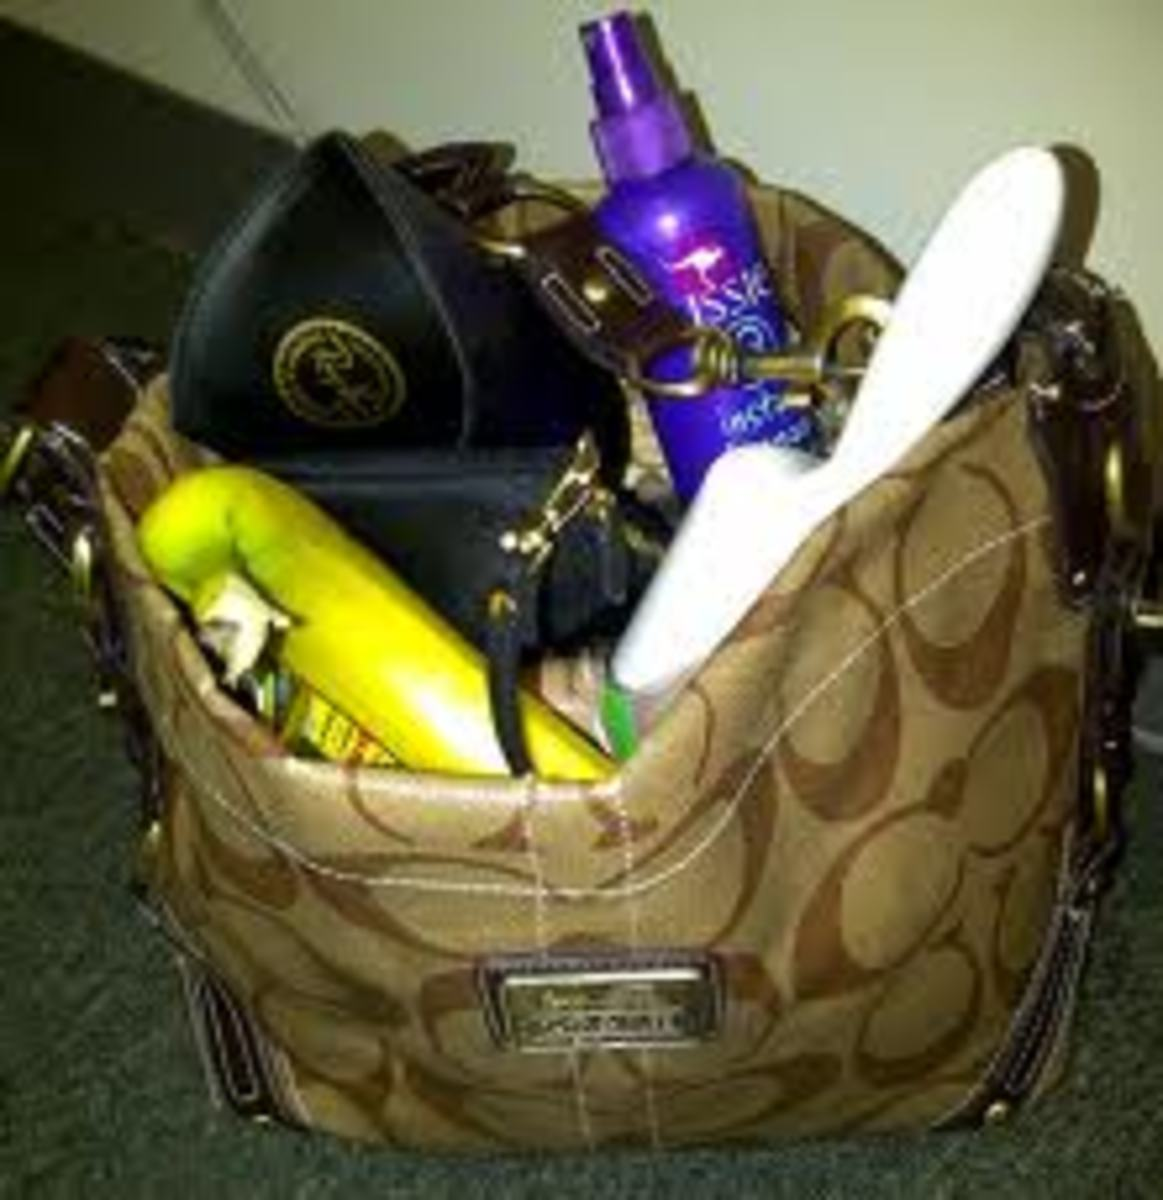 Arsenal of emergency supplies in a typical handbag.